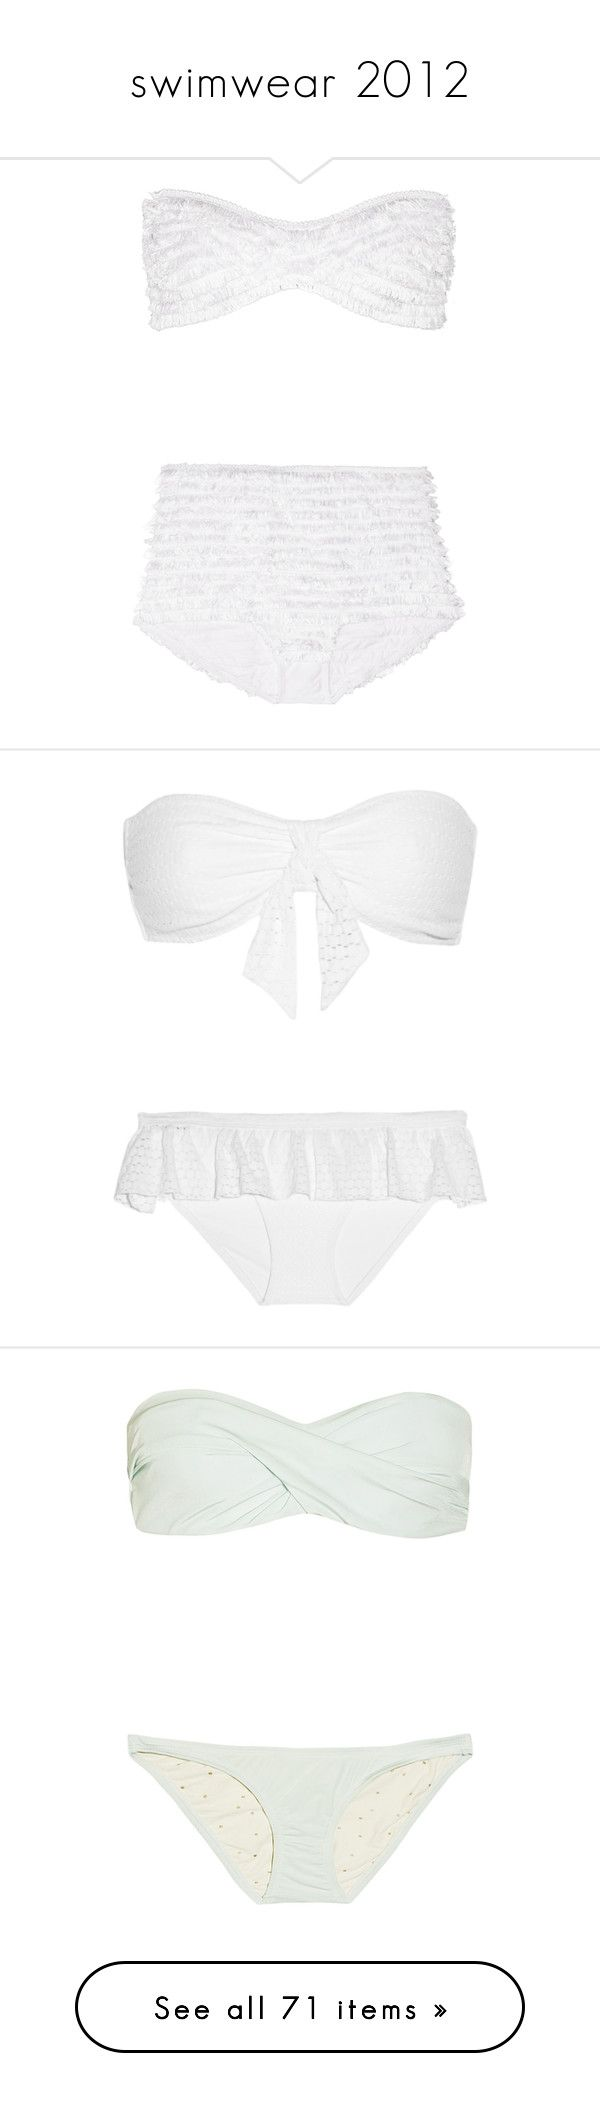 """swimwear 2012"" by dancer11forever ❤ liked on Polyvore featuring swimwear, bikinis, swimsuits, bathing suits, swim, white, bandeau bikini tops, white bikini, bandeau bikini and white bandeau bikini top"